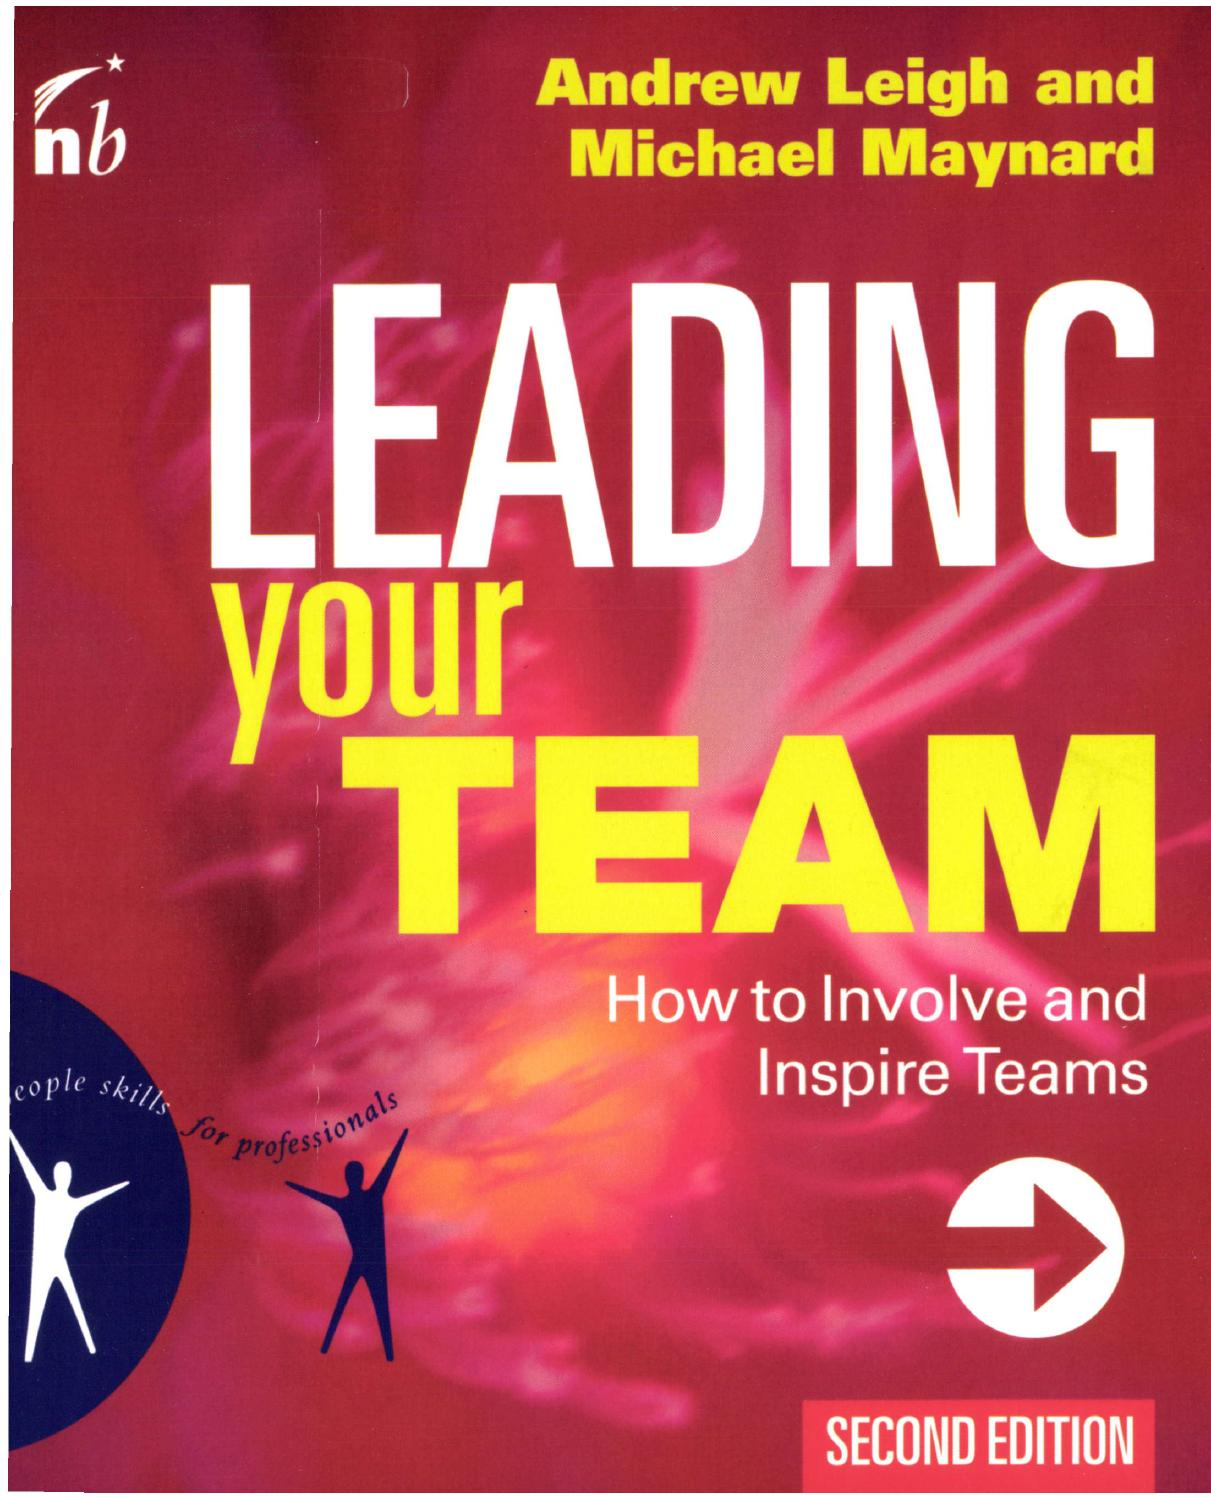 leigh and maynard Andrew leigh warns that a team's reluctance for 'develo home lead  sub-categories  six steps to team enlightenment andrew leigh share this content tags management  andrew leigh is a director of maynard leigh associates, a fellow of the cipd, and joint author with michael maynard of leading your team.